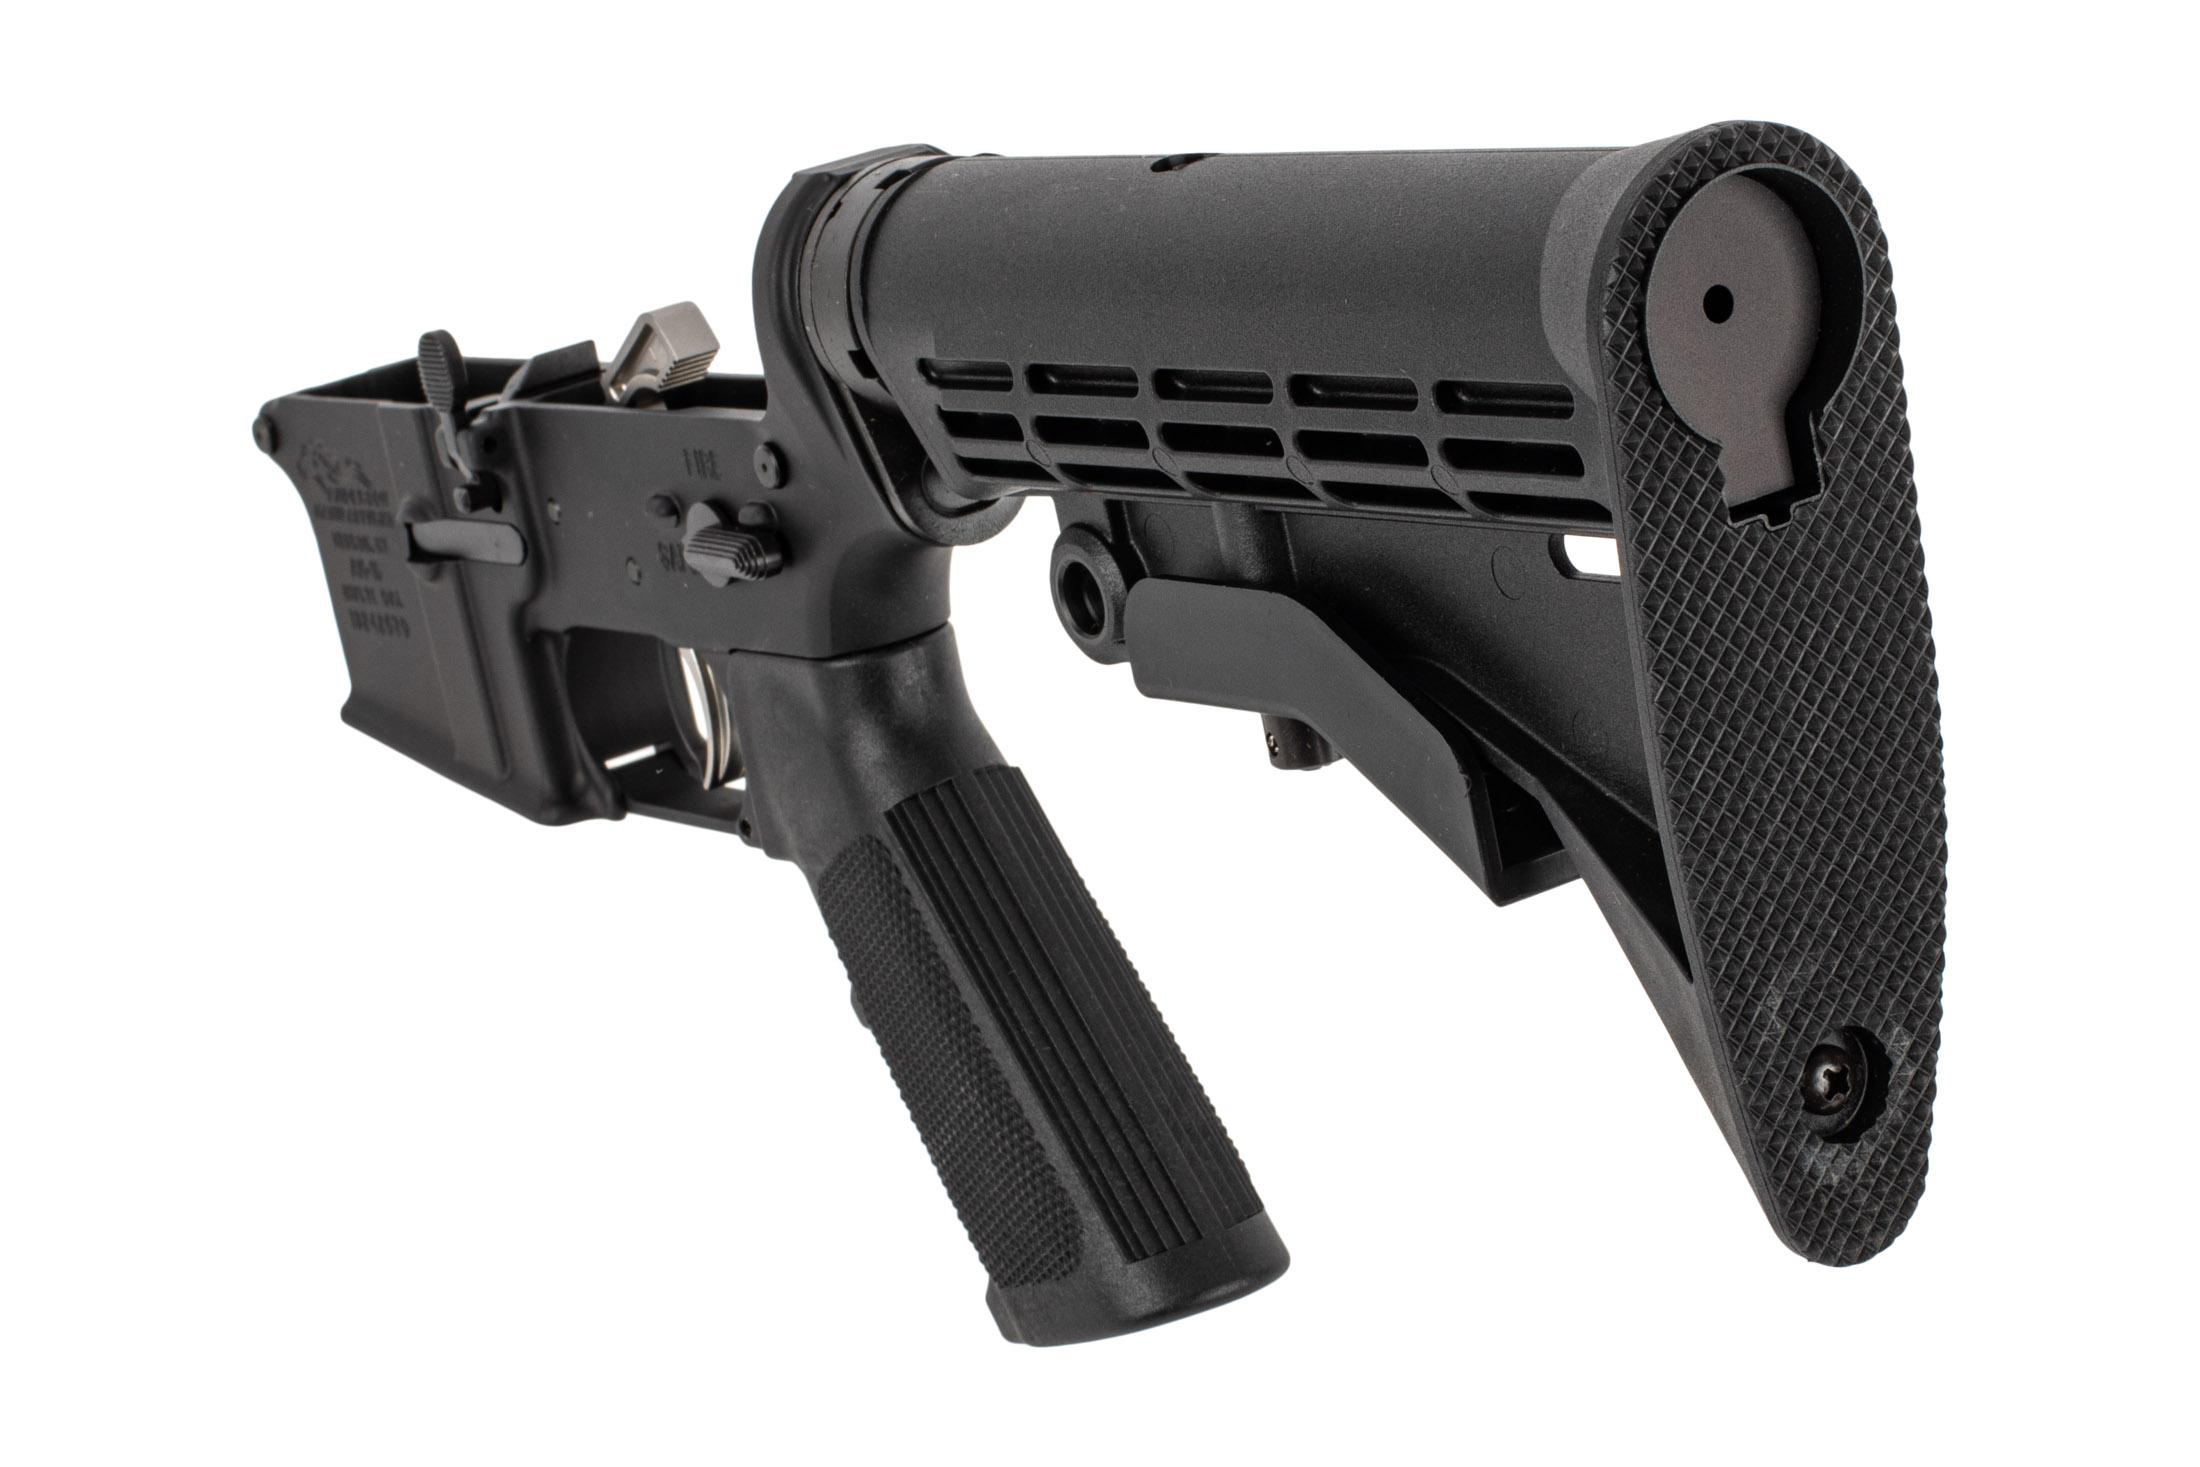 Anderson AR-15 complete lower receiver with stock and pistol grip